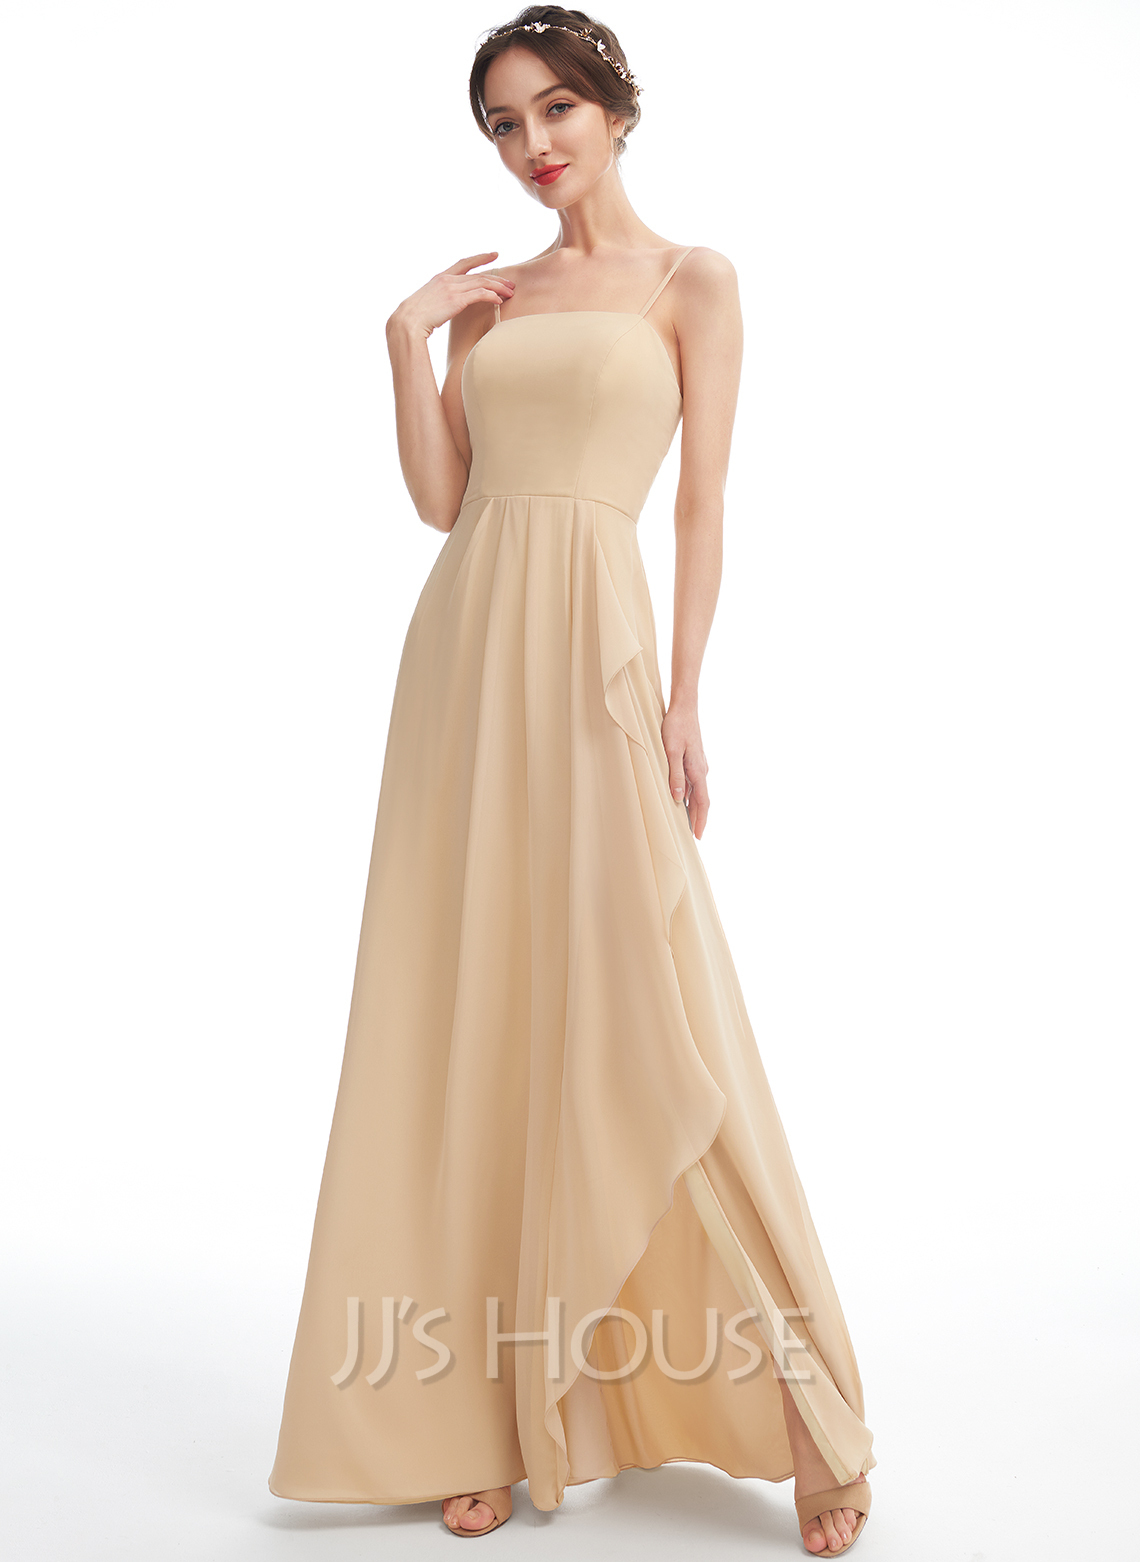 A-Line Square Neckline Floor-Length Bridesmaid Dress With Split Front